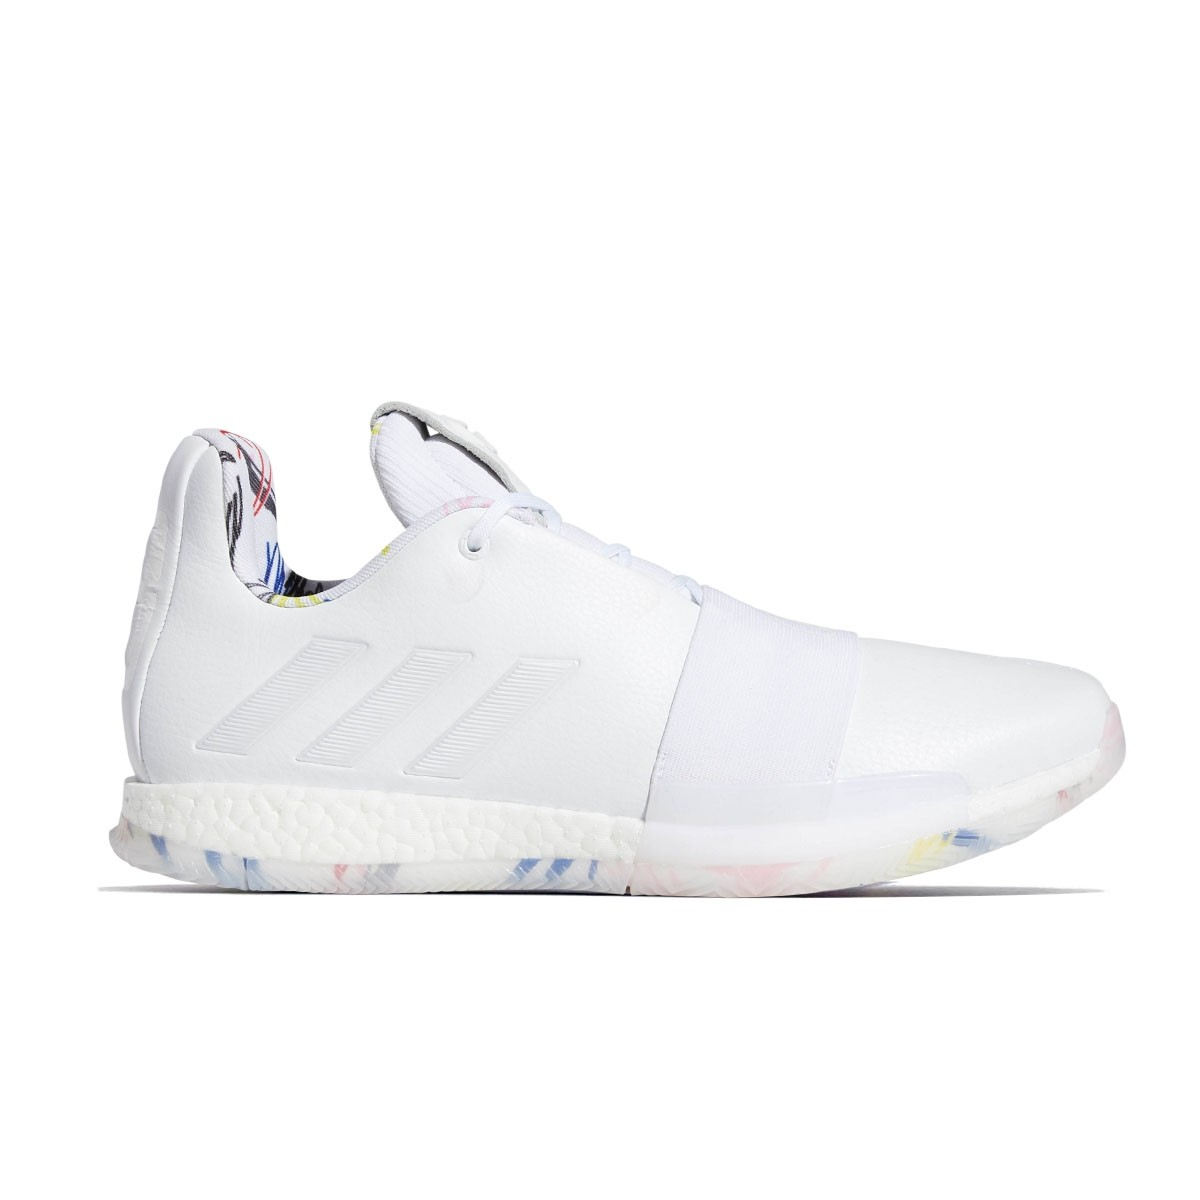 b9f25e51437 Buy ADIDAS Harden Vol.3  Doodle  Basketball shoes   sneakers